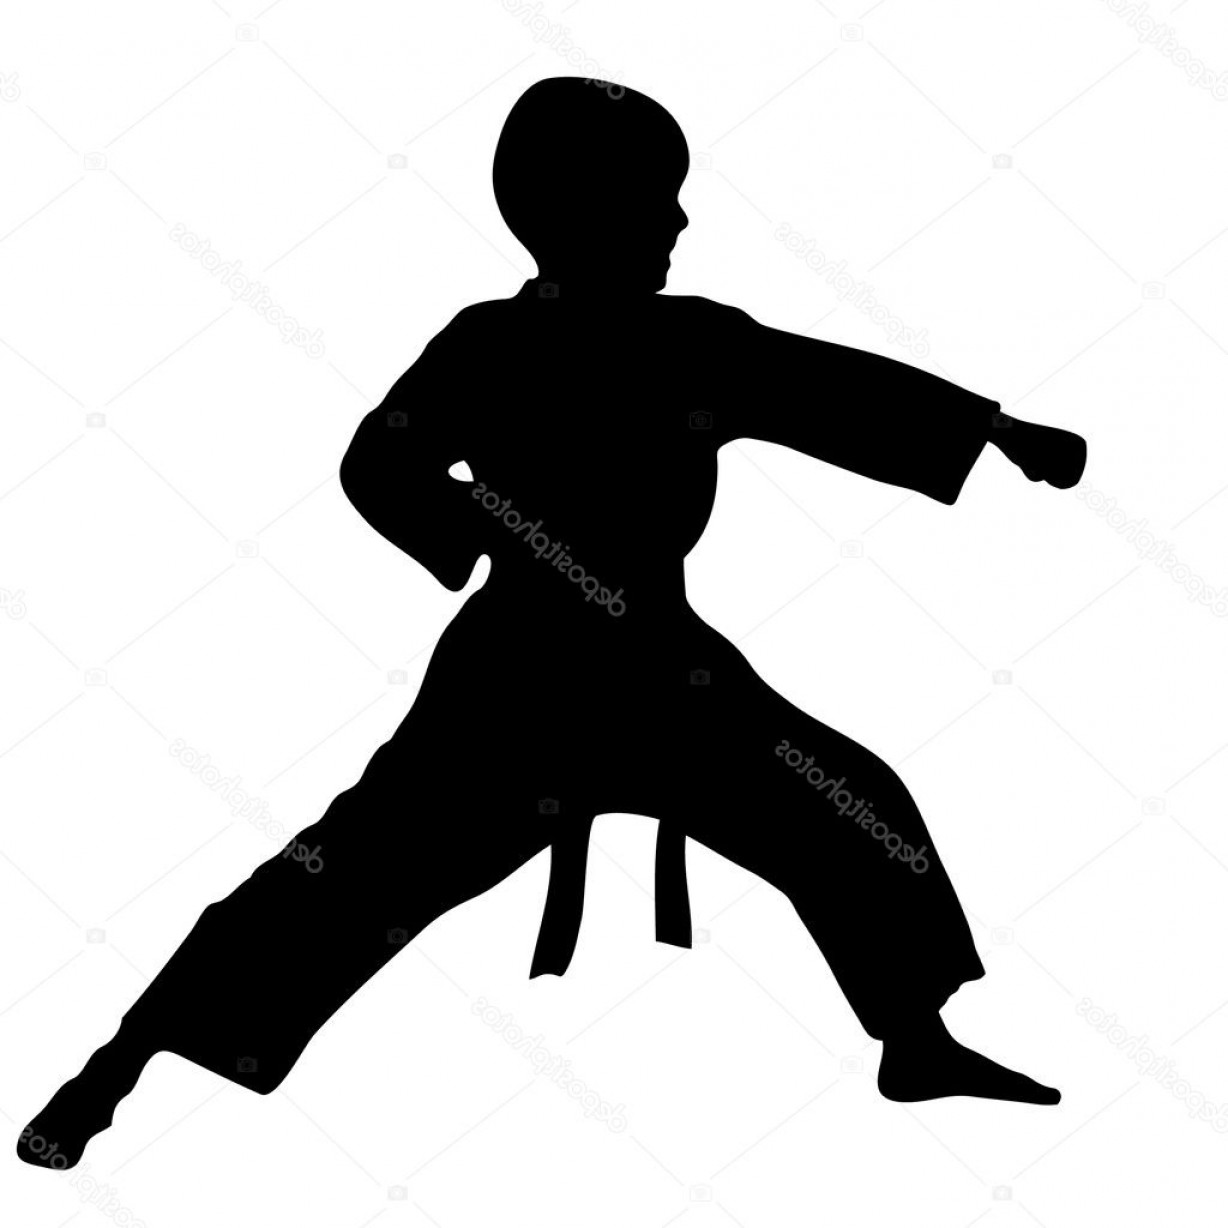 Karate Vector: Stock Illustration Martial Arts Boy Karate Punch